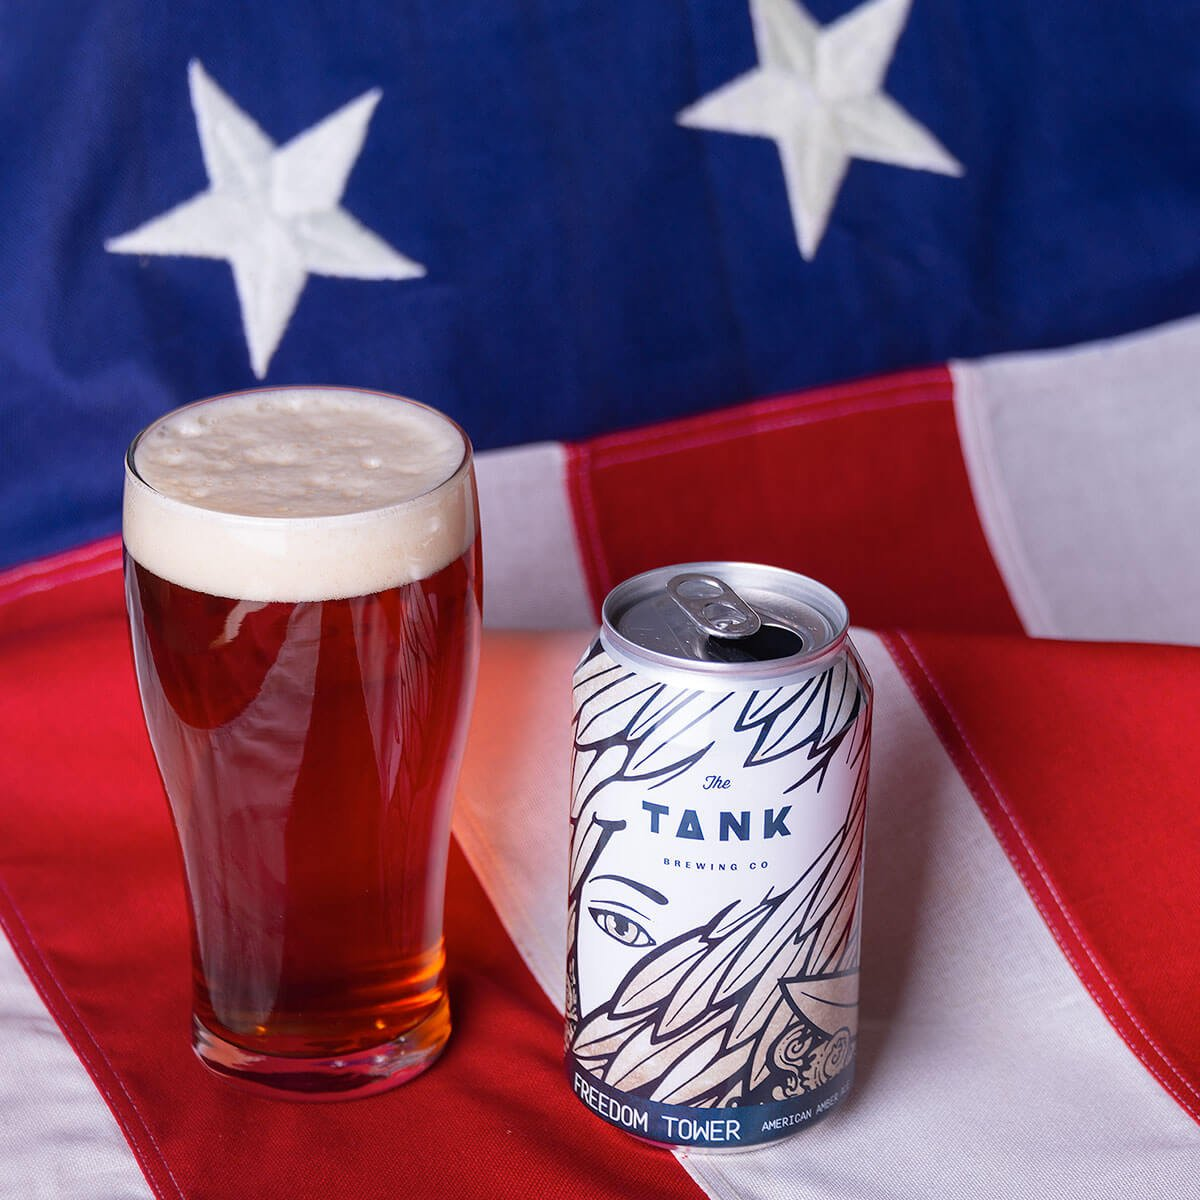 Freedom Tower is an American Amber Ale by The Tank Brewing Co. that showcases floral and citrus hops with caramel and bready malt flavors.